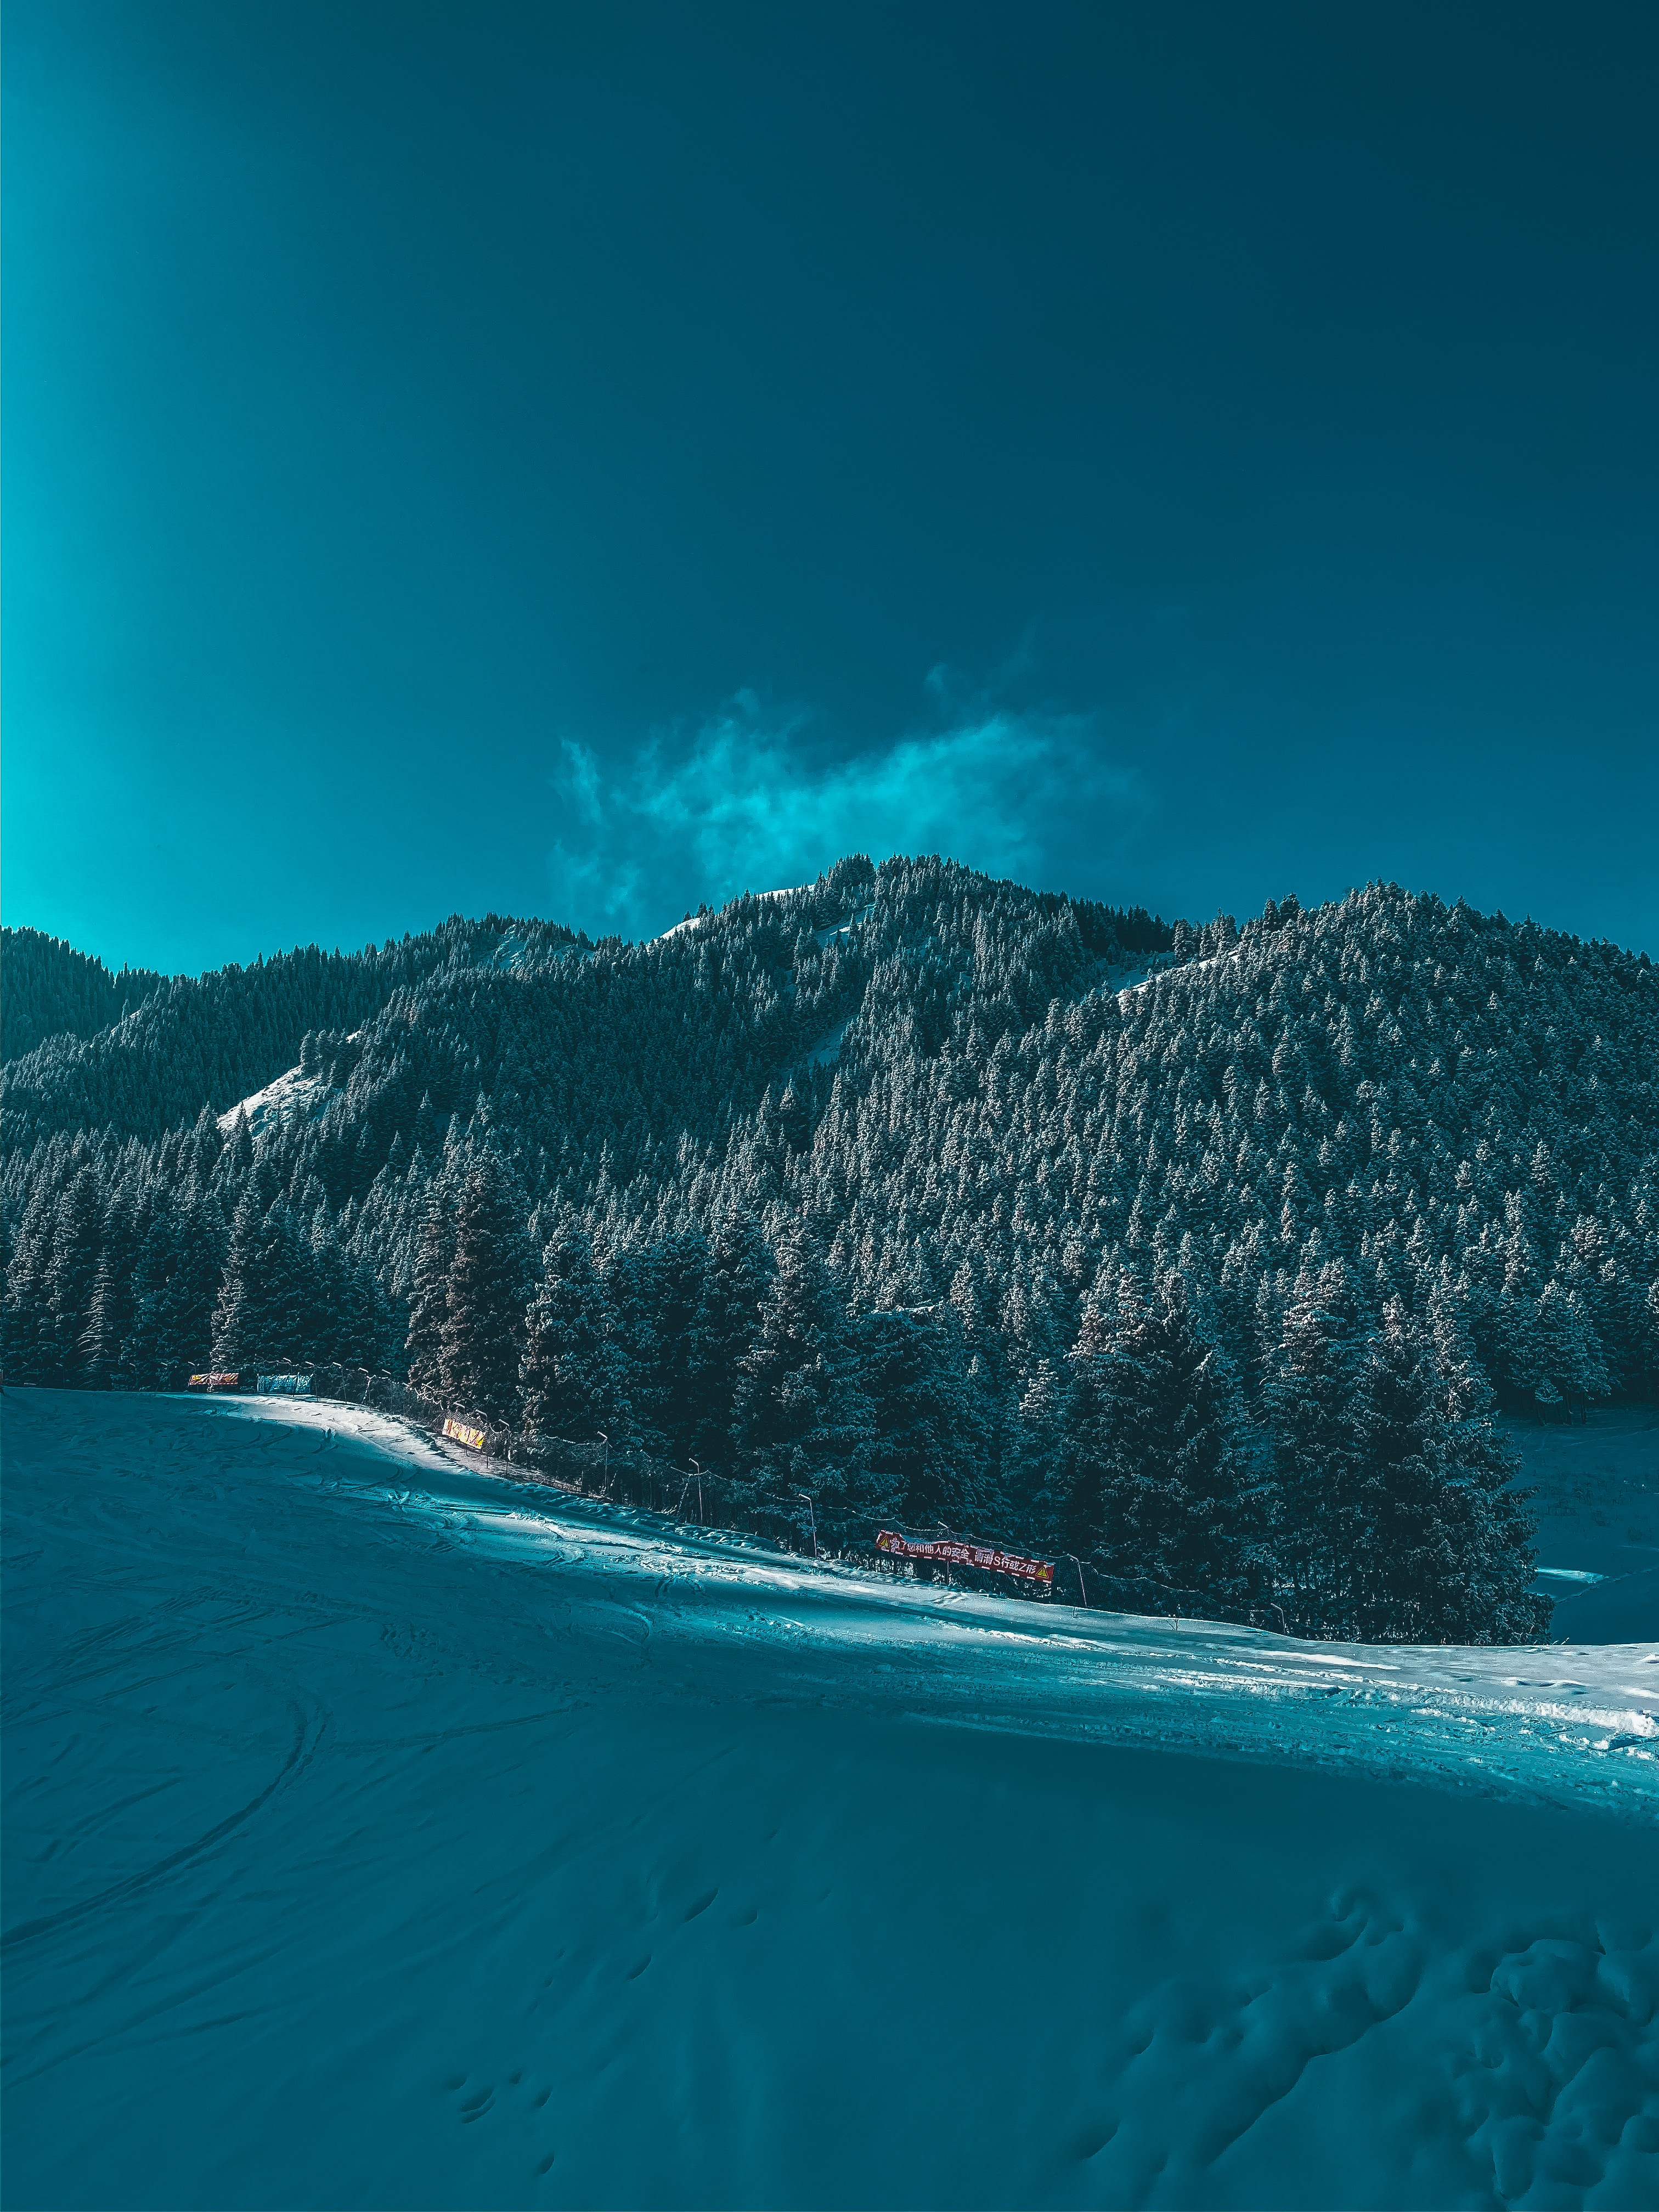 149928 download wallpaper Winter, Nature, Trees, Mountains, Snow, Ski Track screensavers and pictures for free